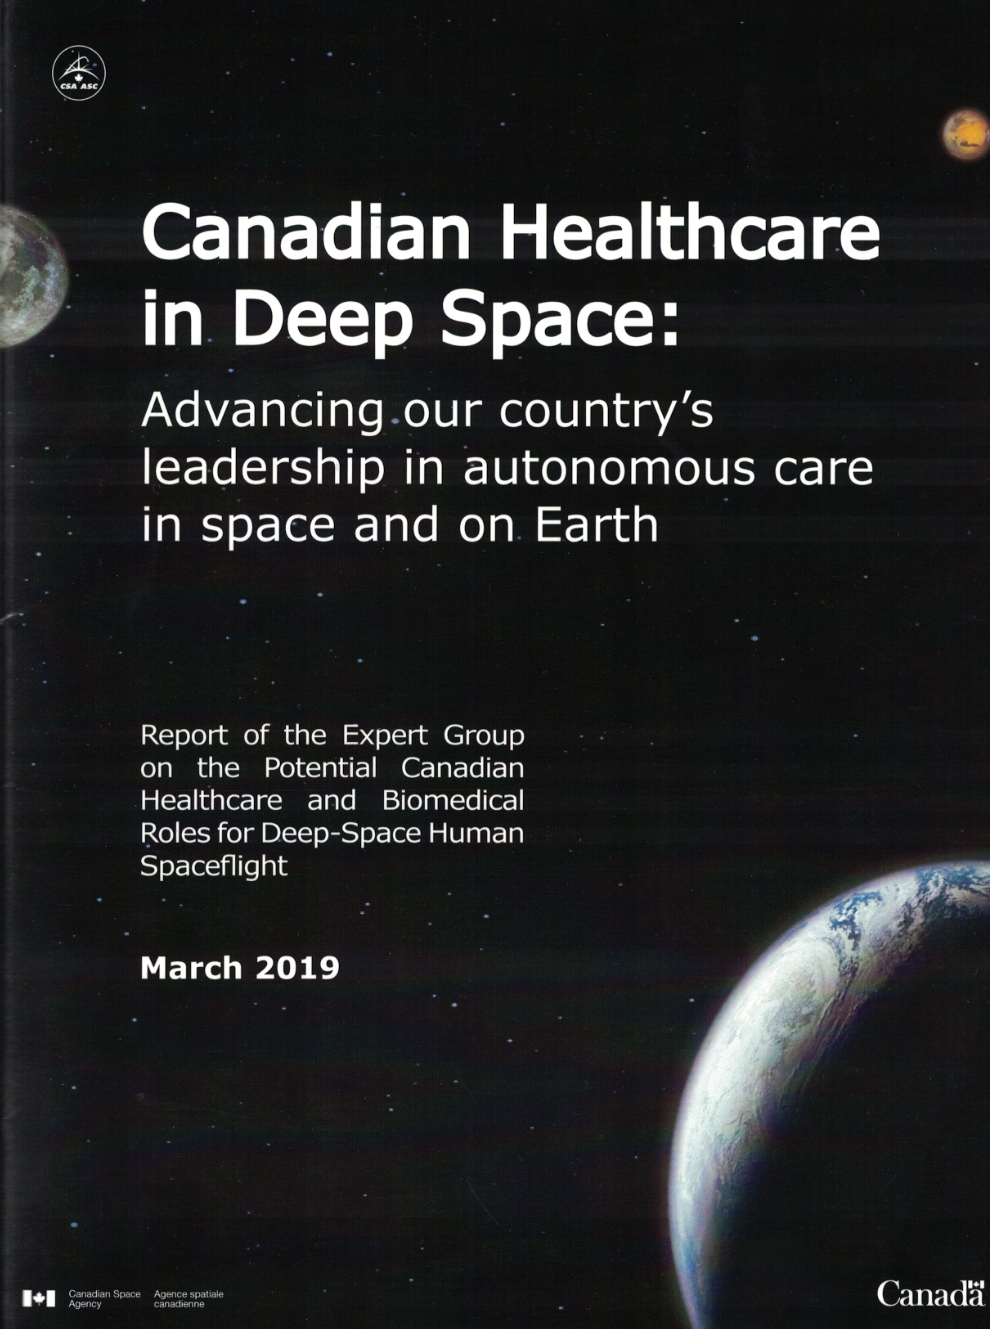 Canadian Healthcare in Deep Space: Advancing our country's leadership in autonomous care in space and on Earth report. Credit: Canadian Space Agency.